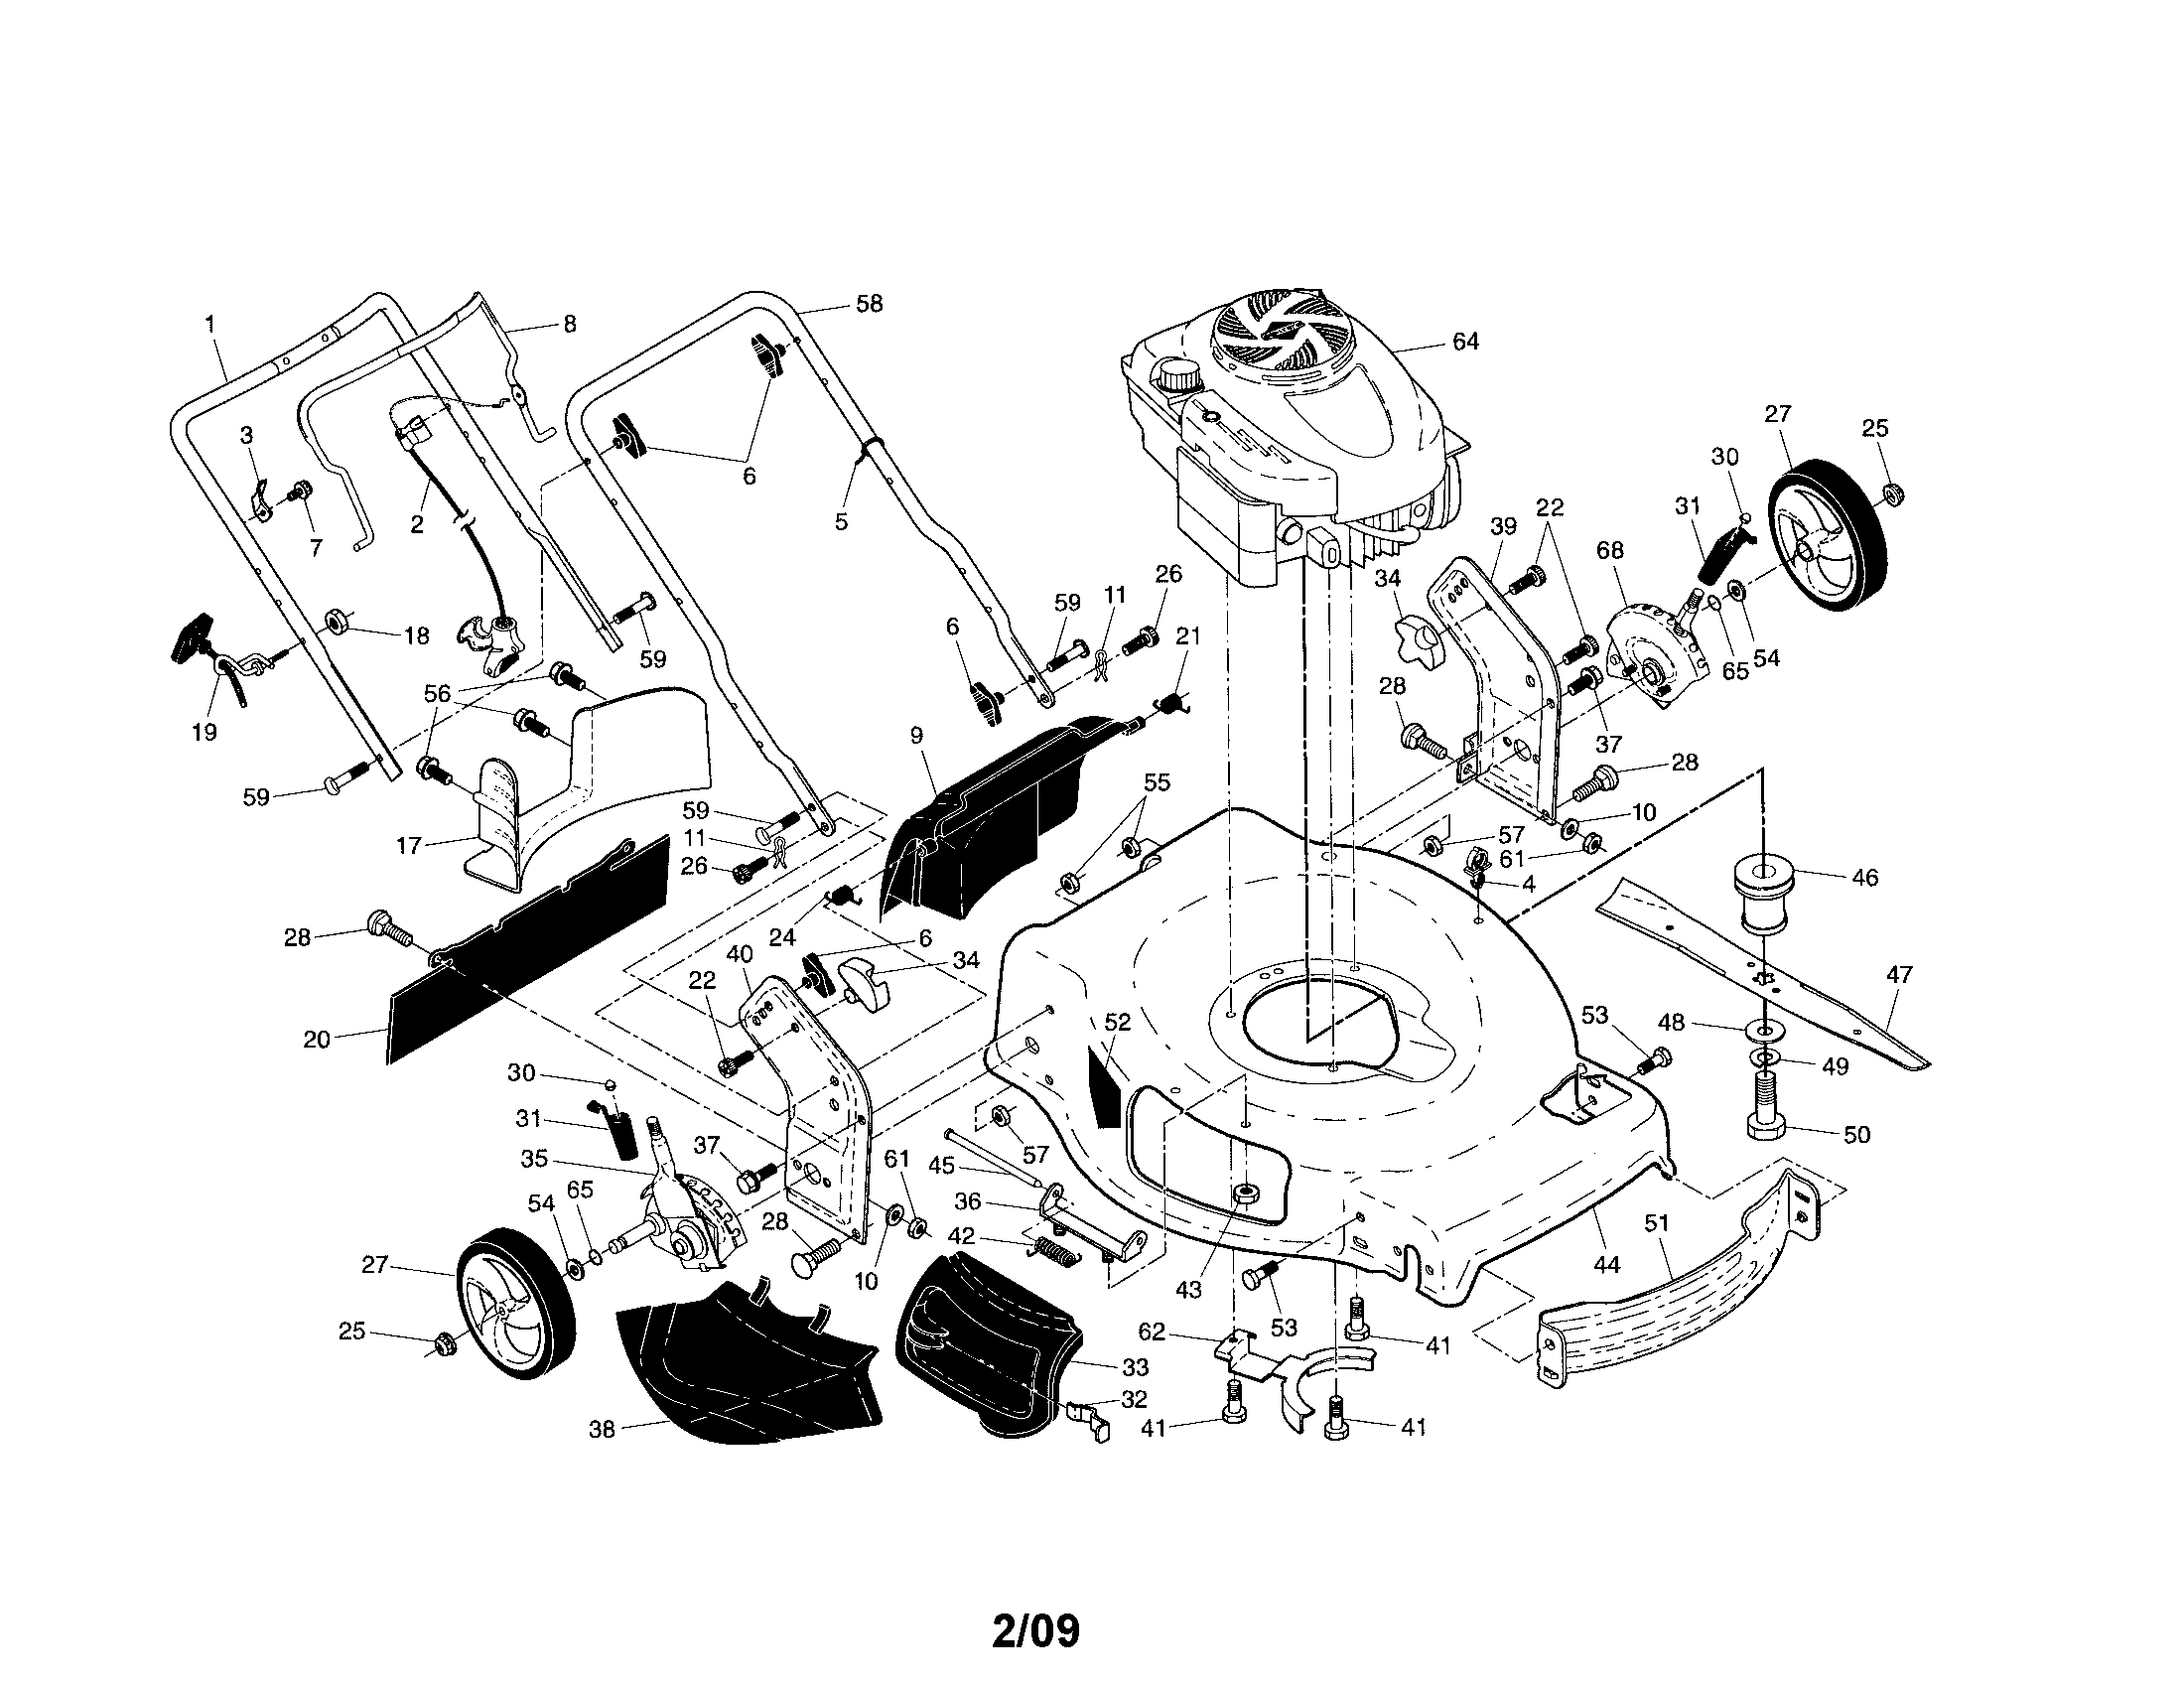 craftsman riding mower wiring diagram briggs stratton 42a707 wiring diagram briggs carb rebuild